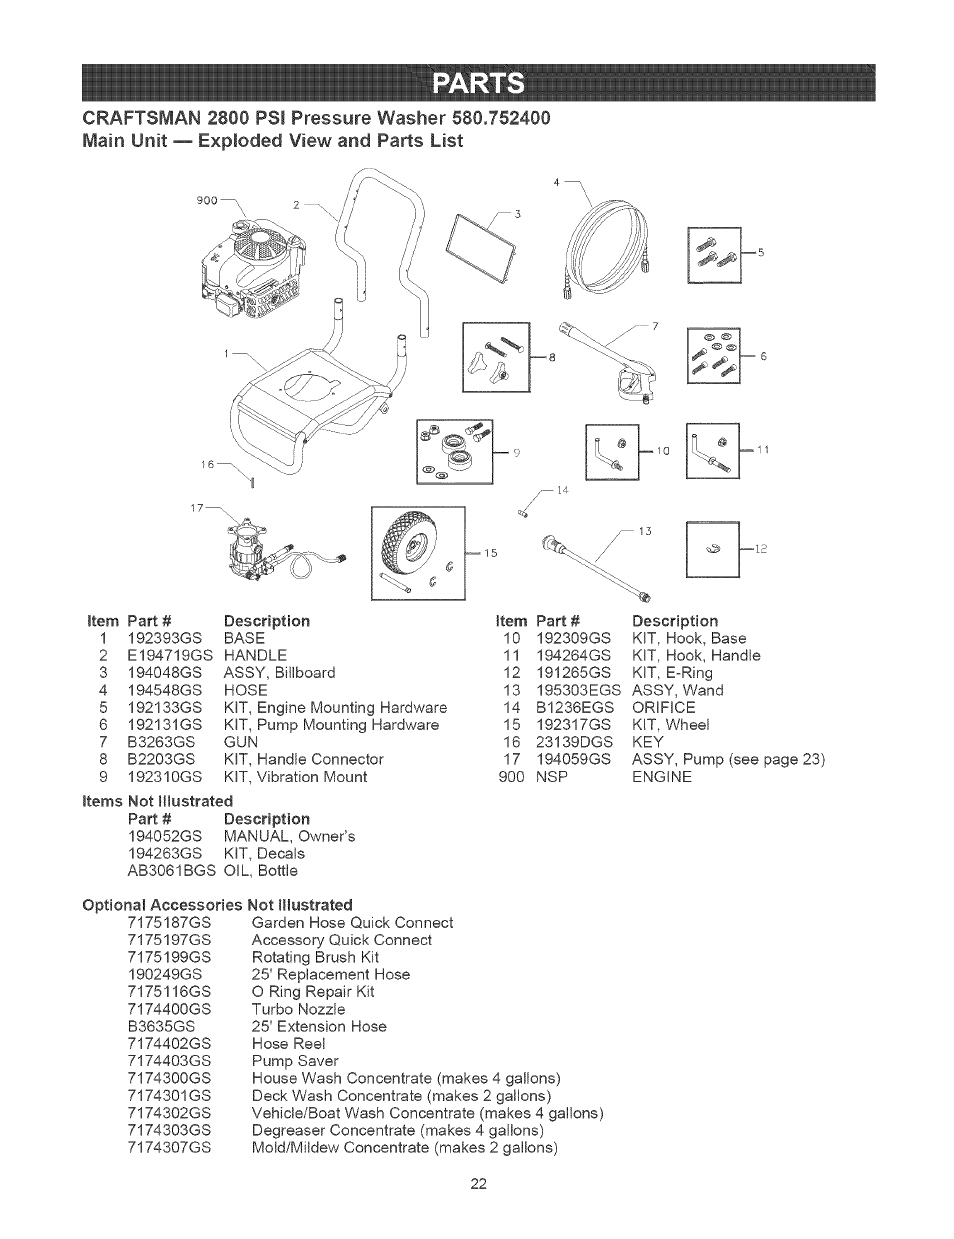 Parts | Craftsman 580.752400 User Manual | Page 22 / 52 on